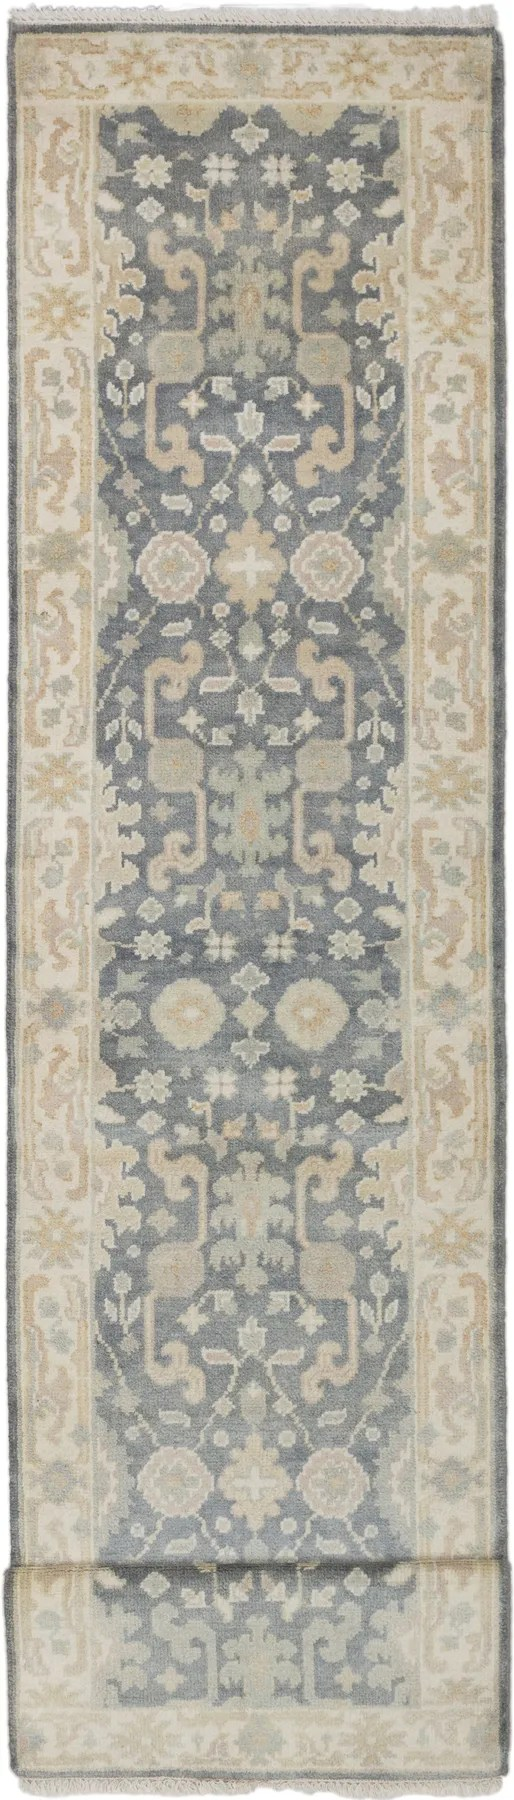 One-of-a-Kind Doggett Hand-Knotted Wool Gray Area Rug